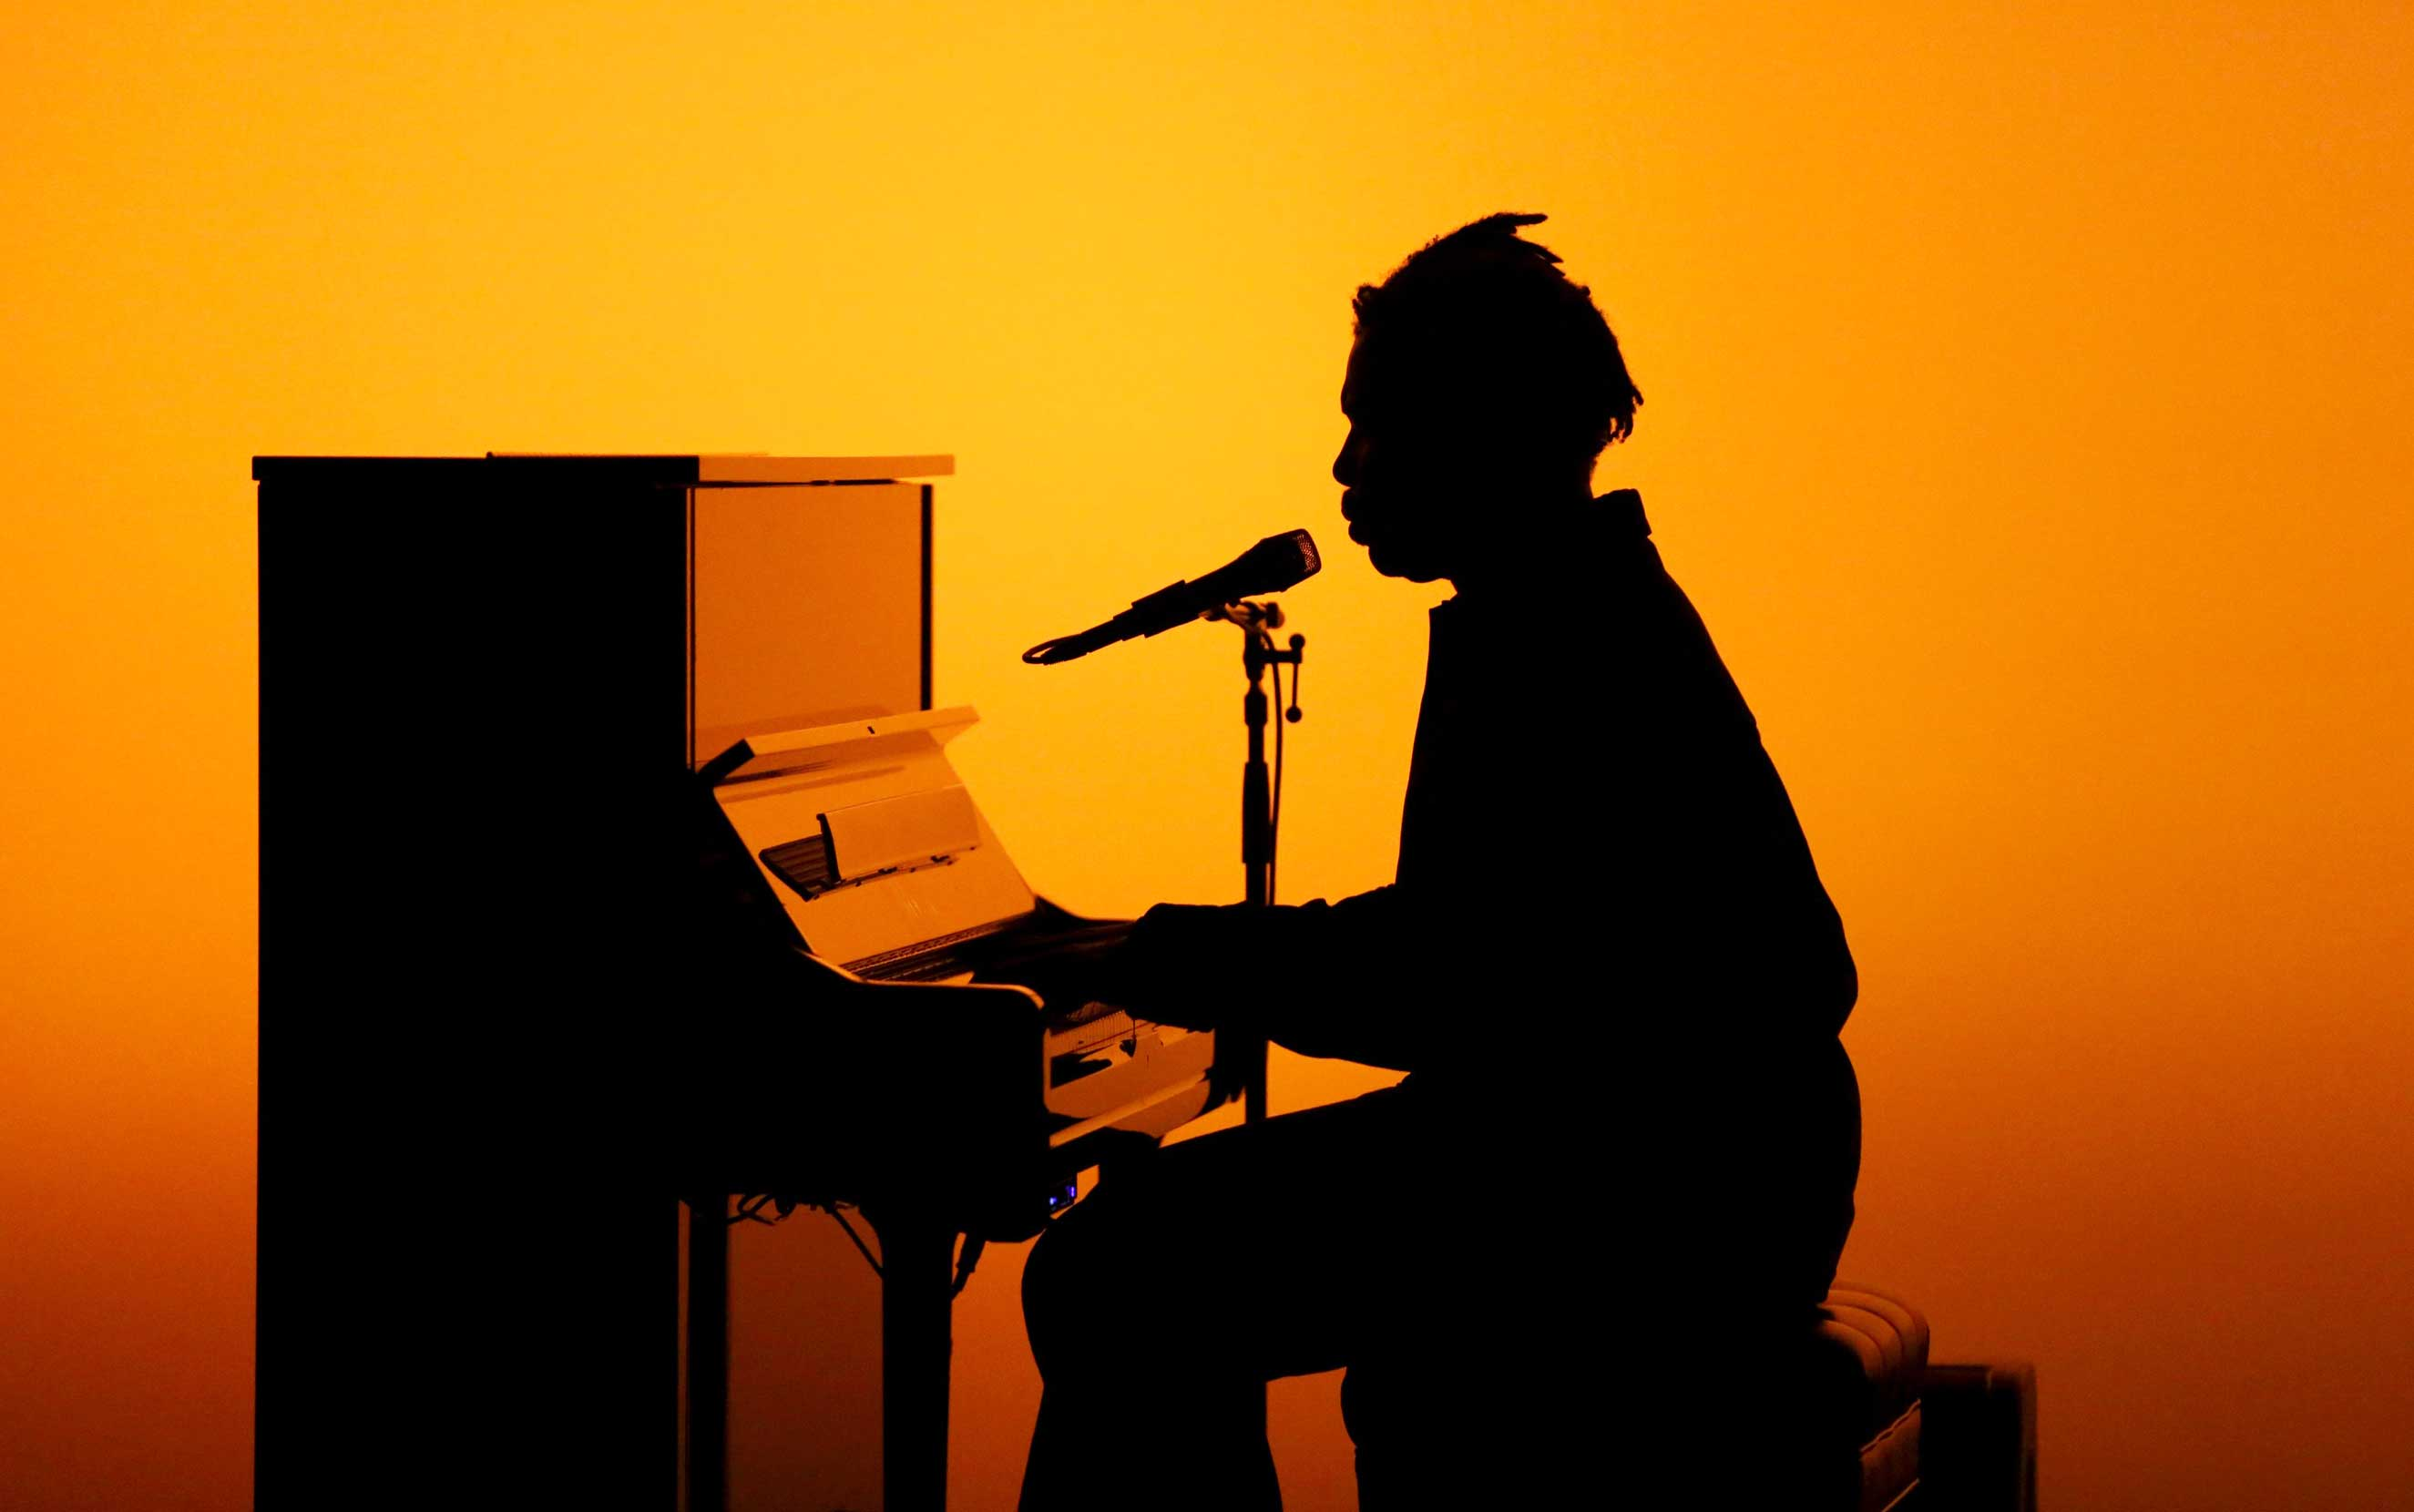 Sampha is best known for his collaborations with hip-hop superstars